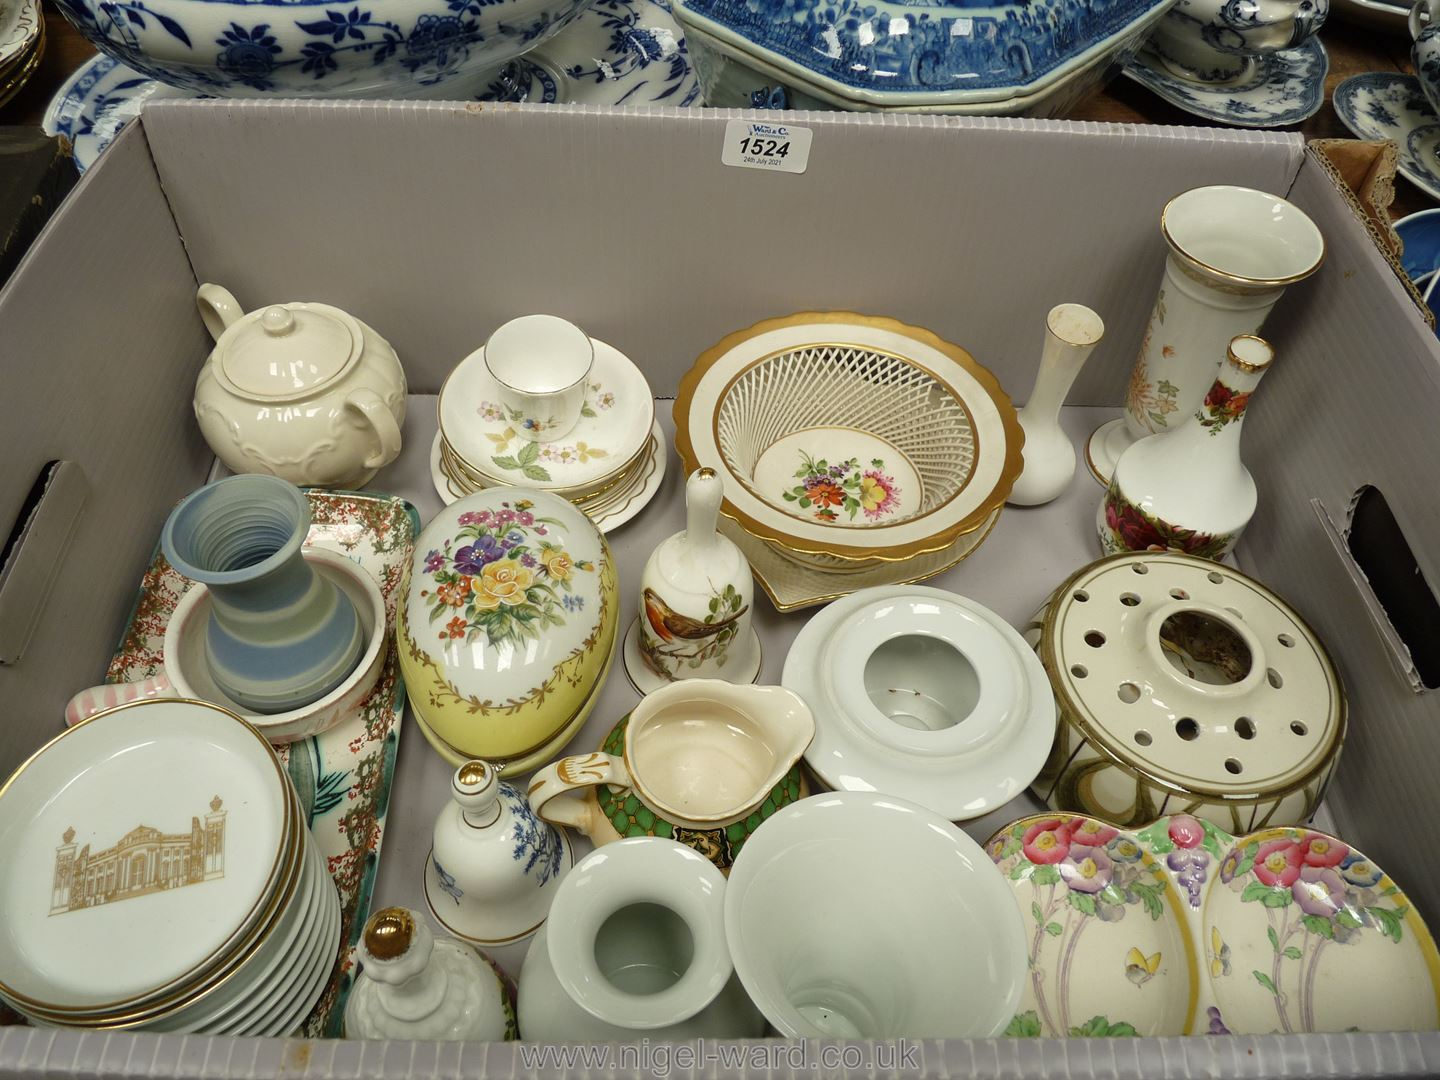 A quantity of pottery and china including Jersey pottery Pot Pourri,